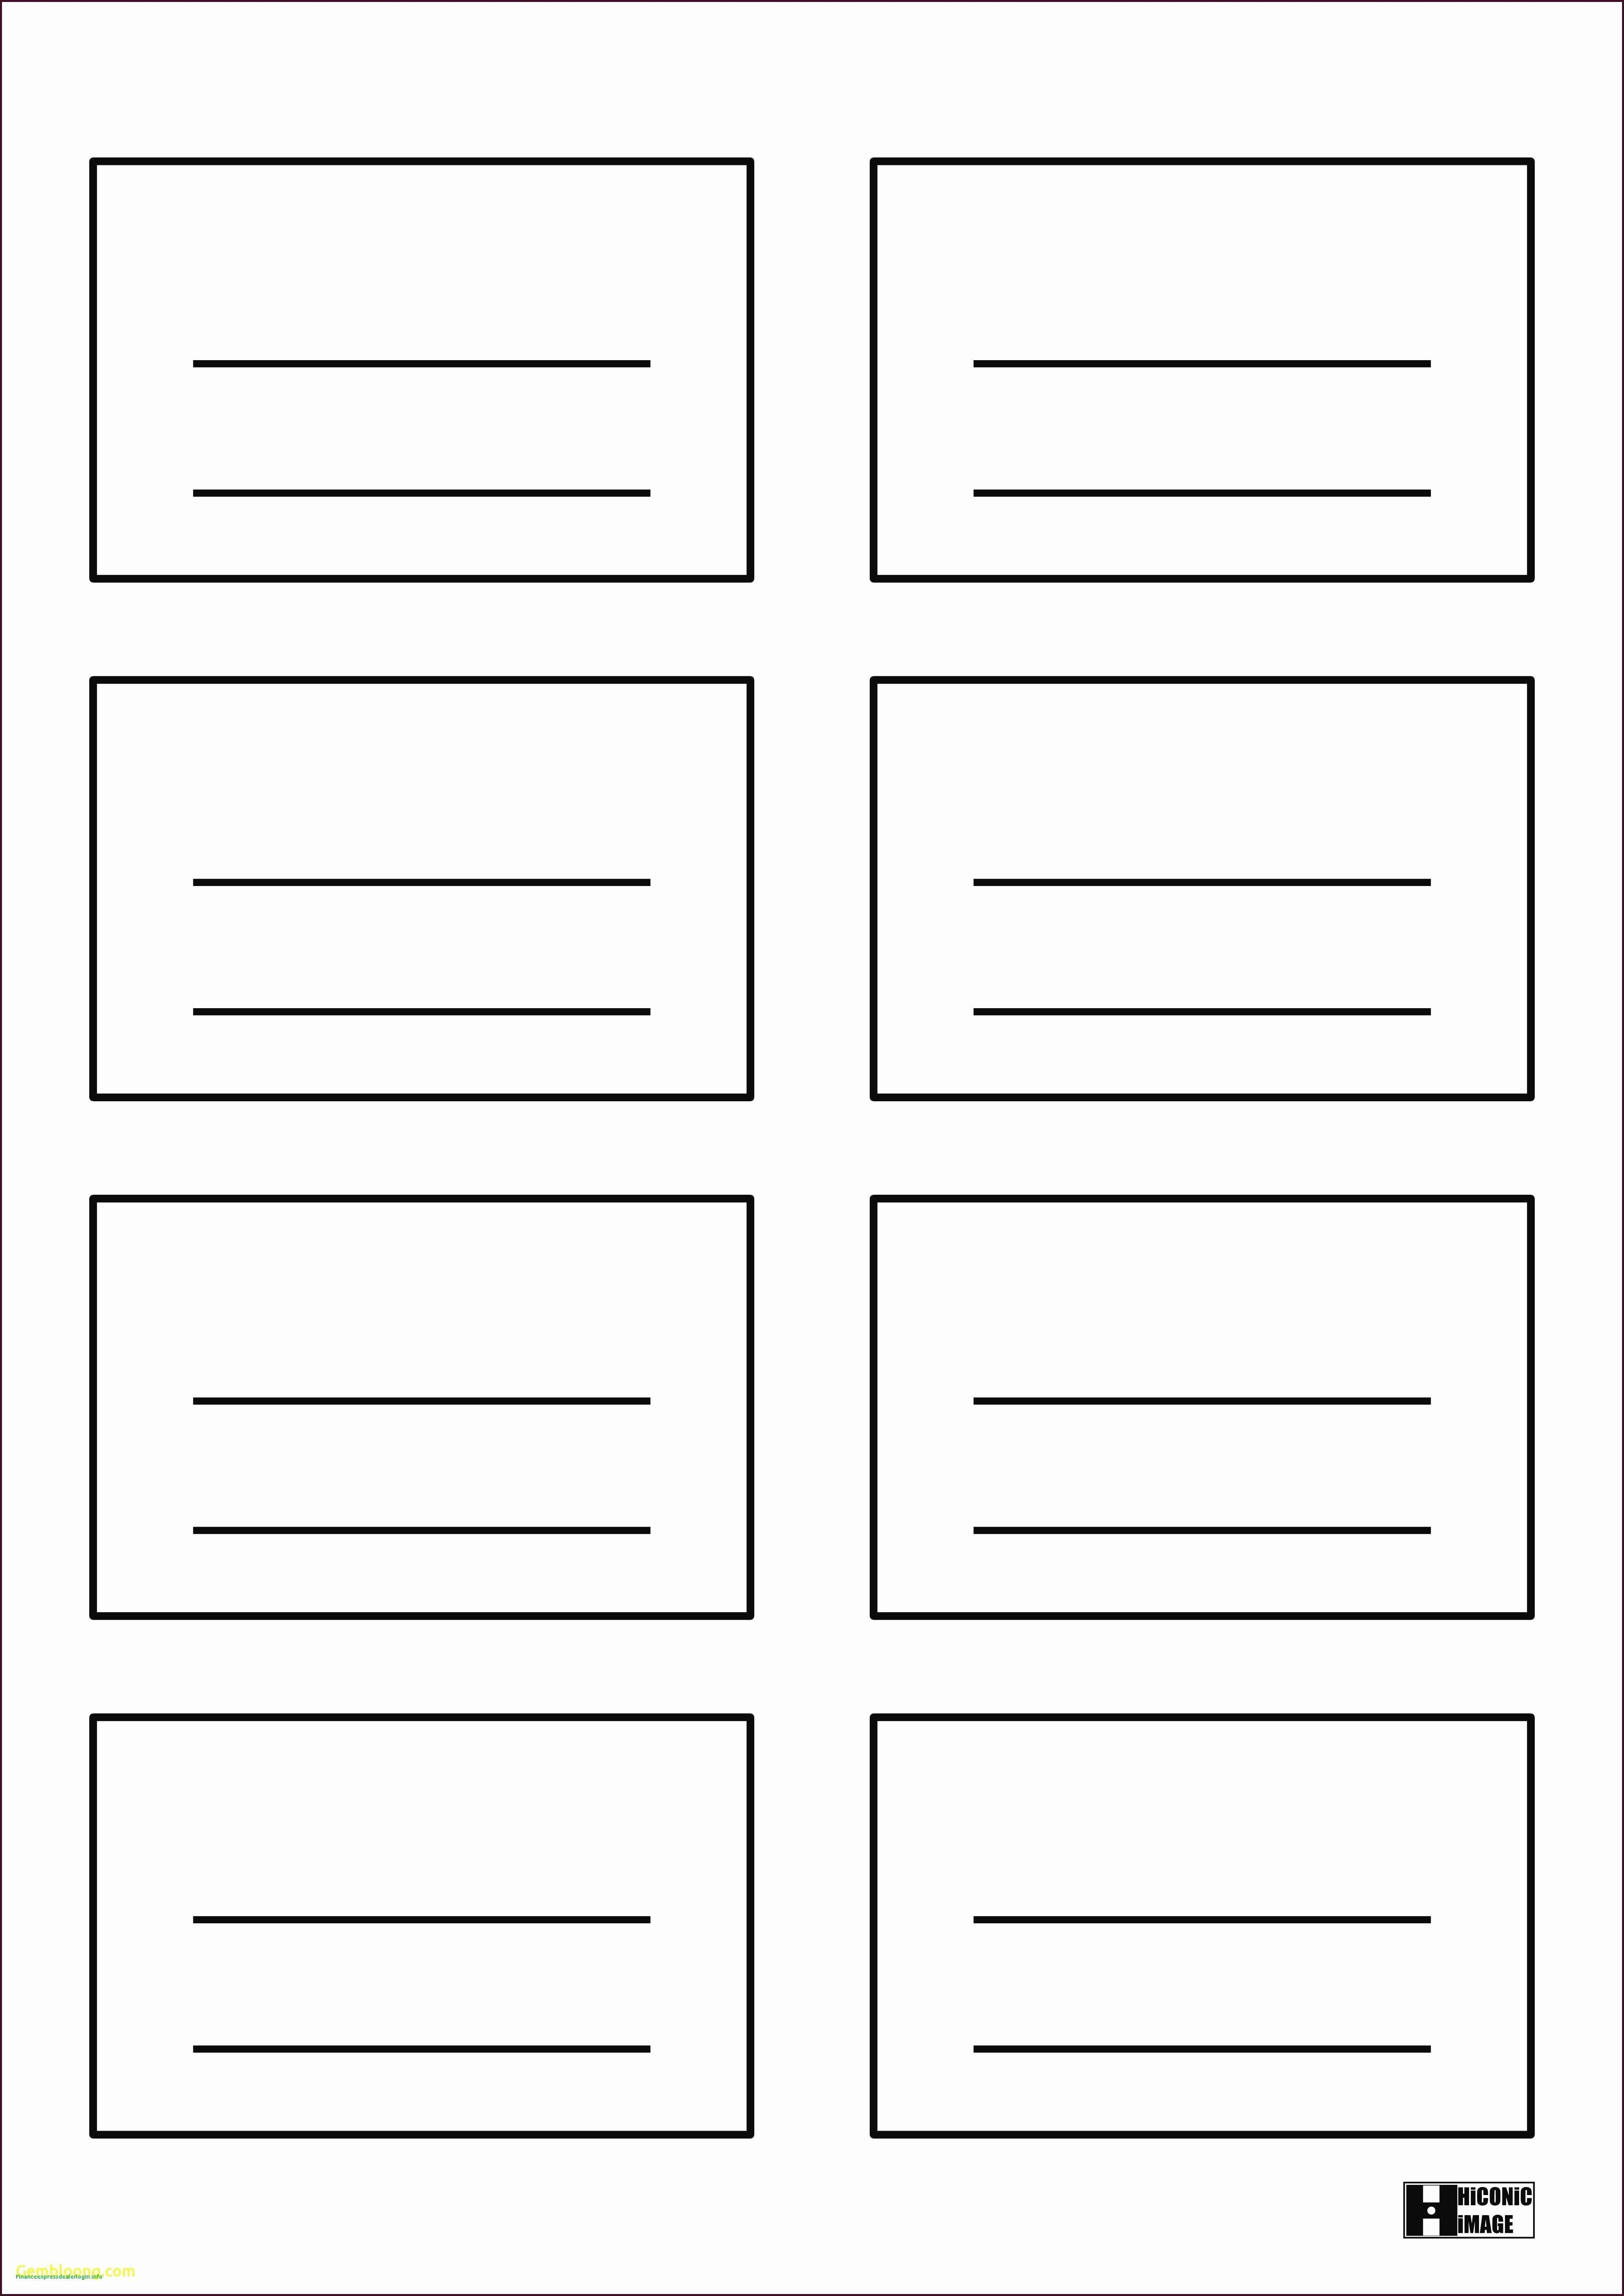 5x7 Greeting Card Template Word Fresh Luxury 4x6 Index Card Template for Word